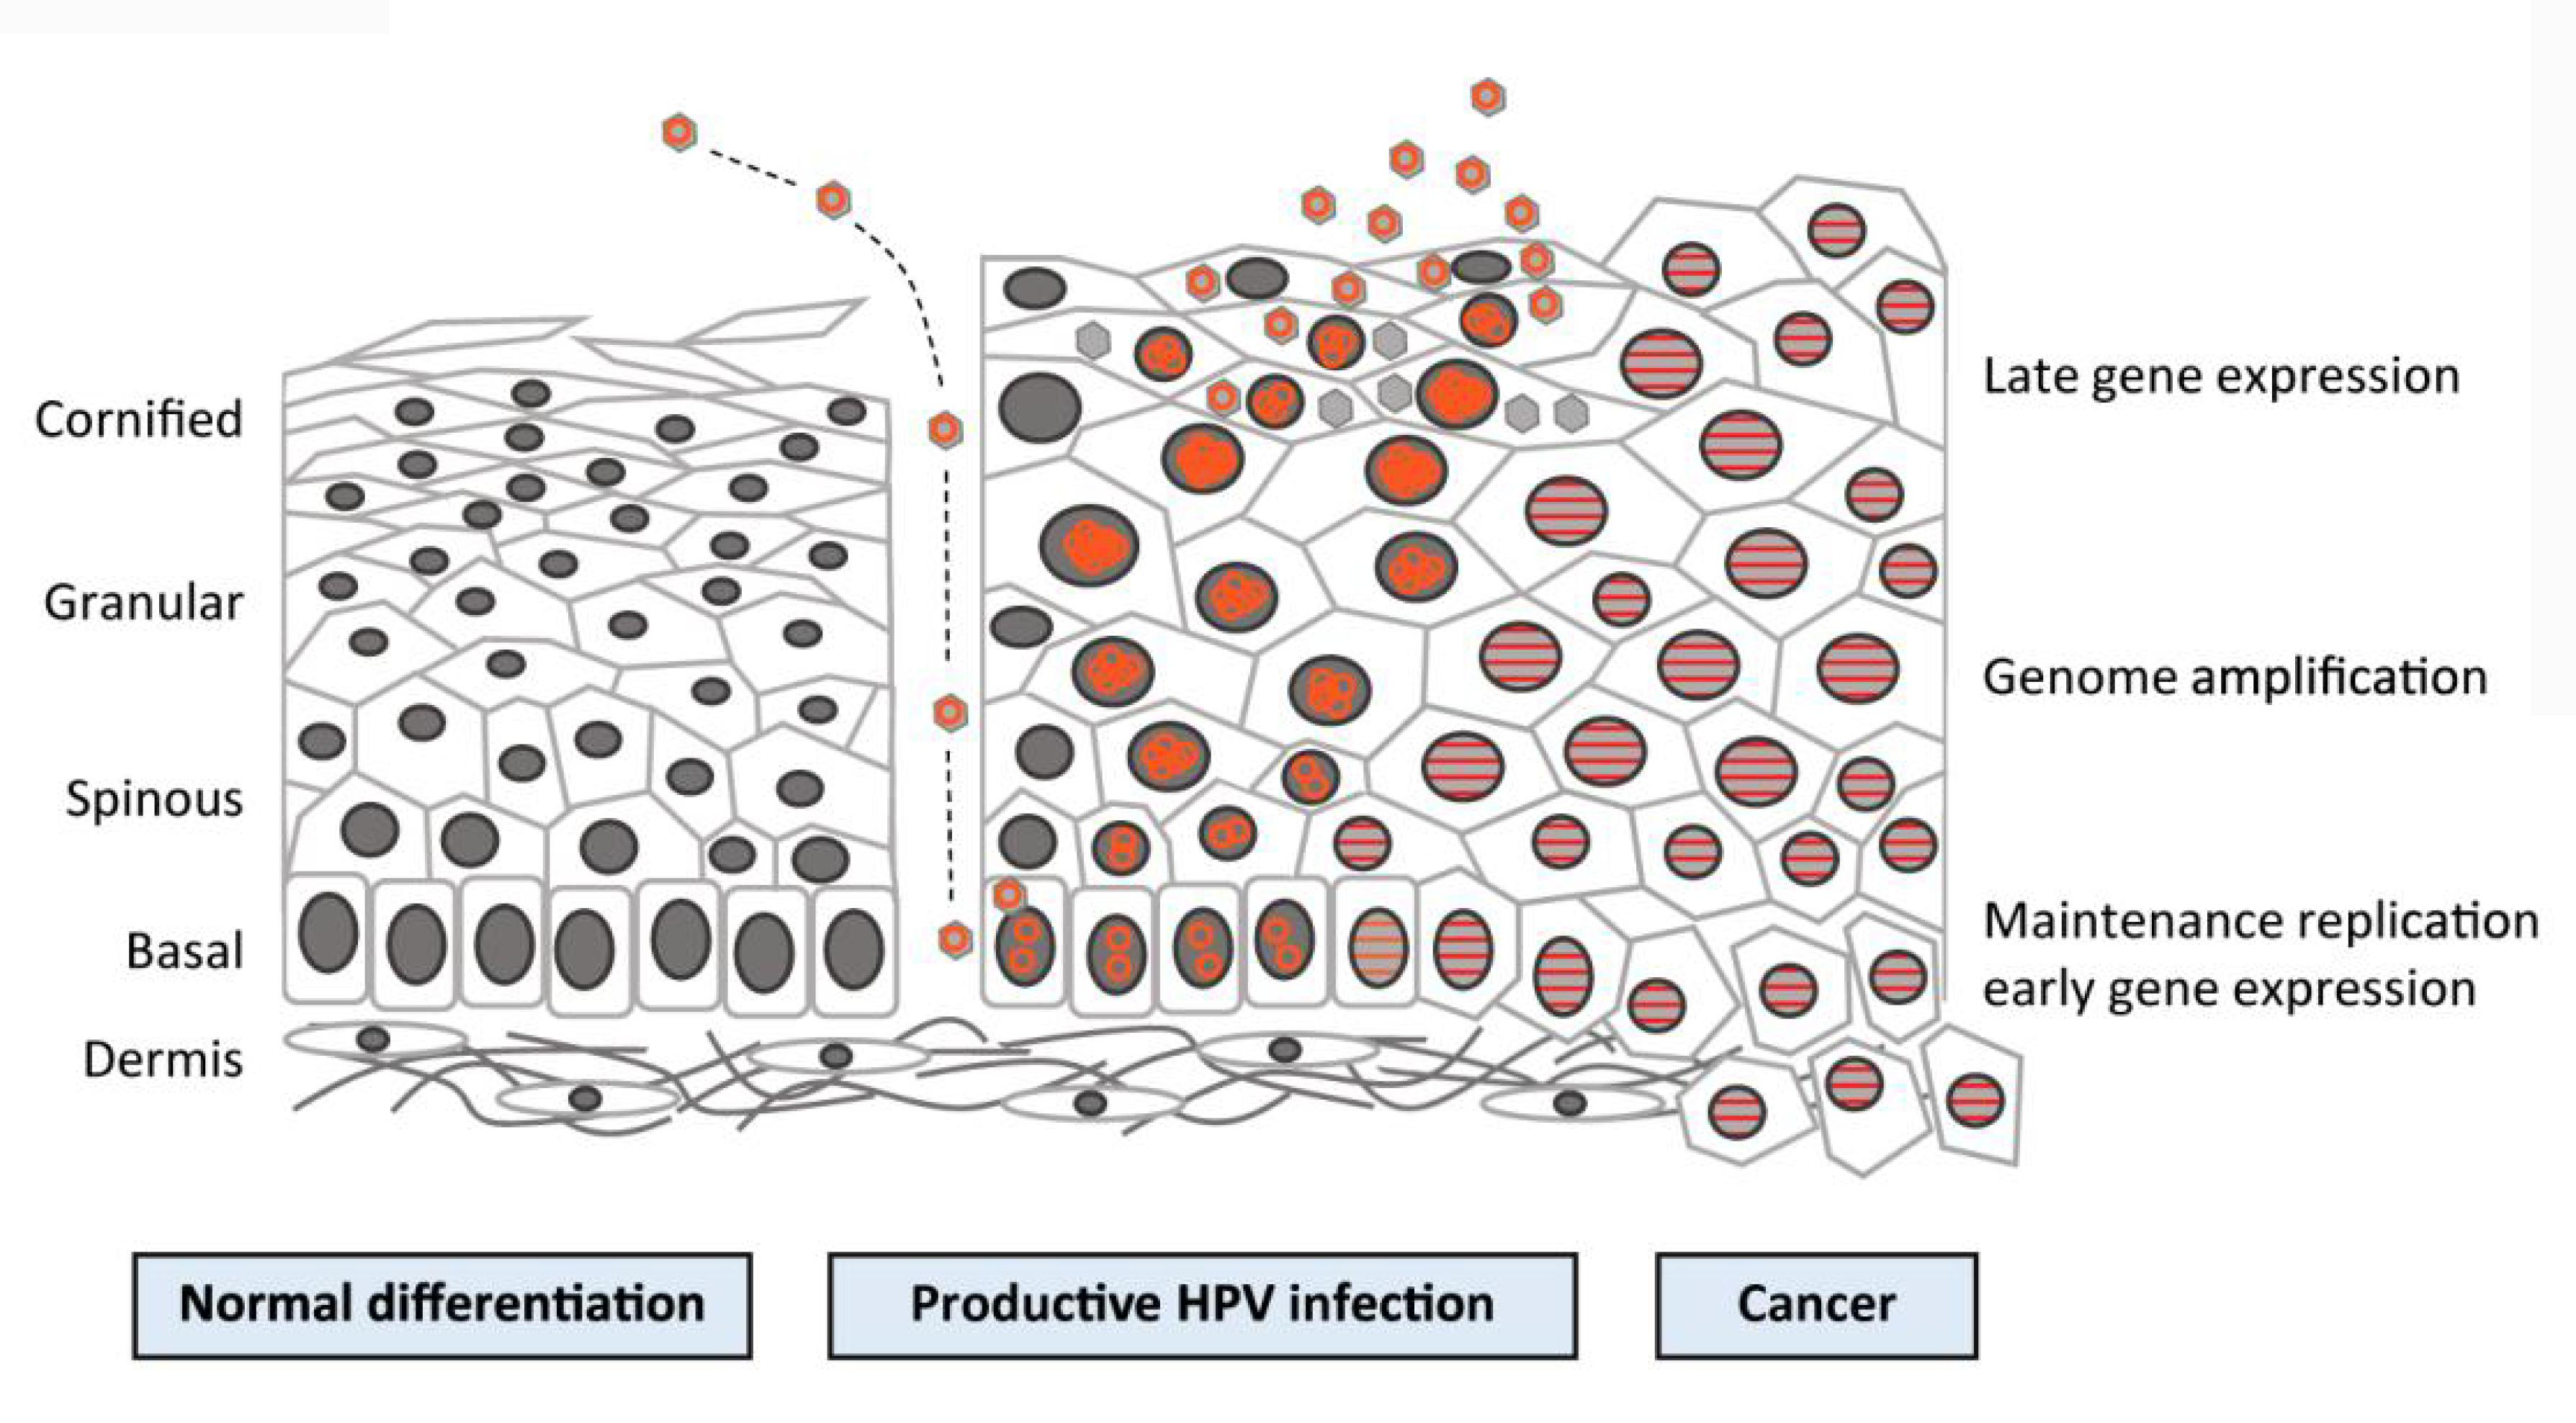 human papillomavirus (hpv) infection is directly associated with